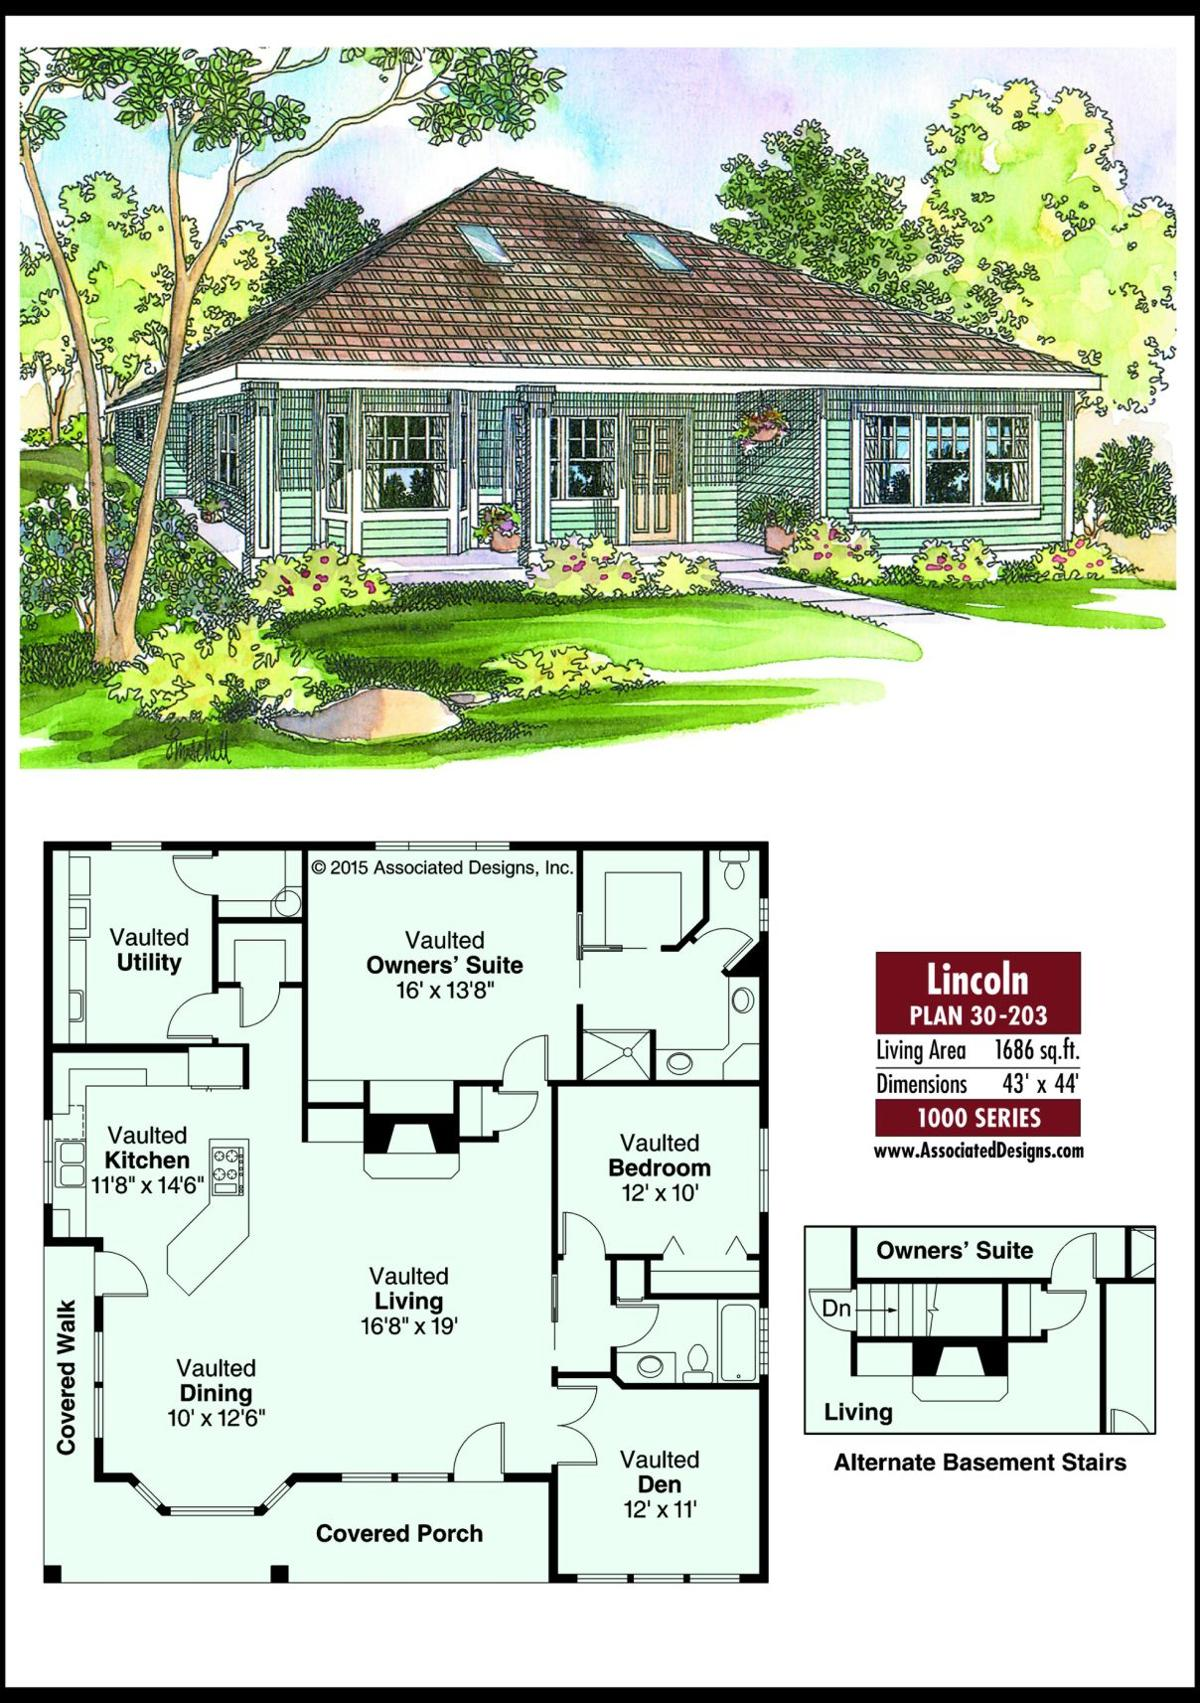 This week's house plan Lincoln 30-203